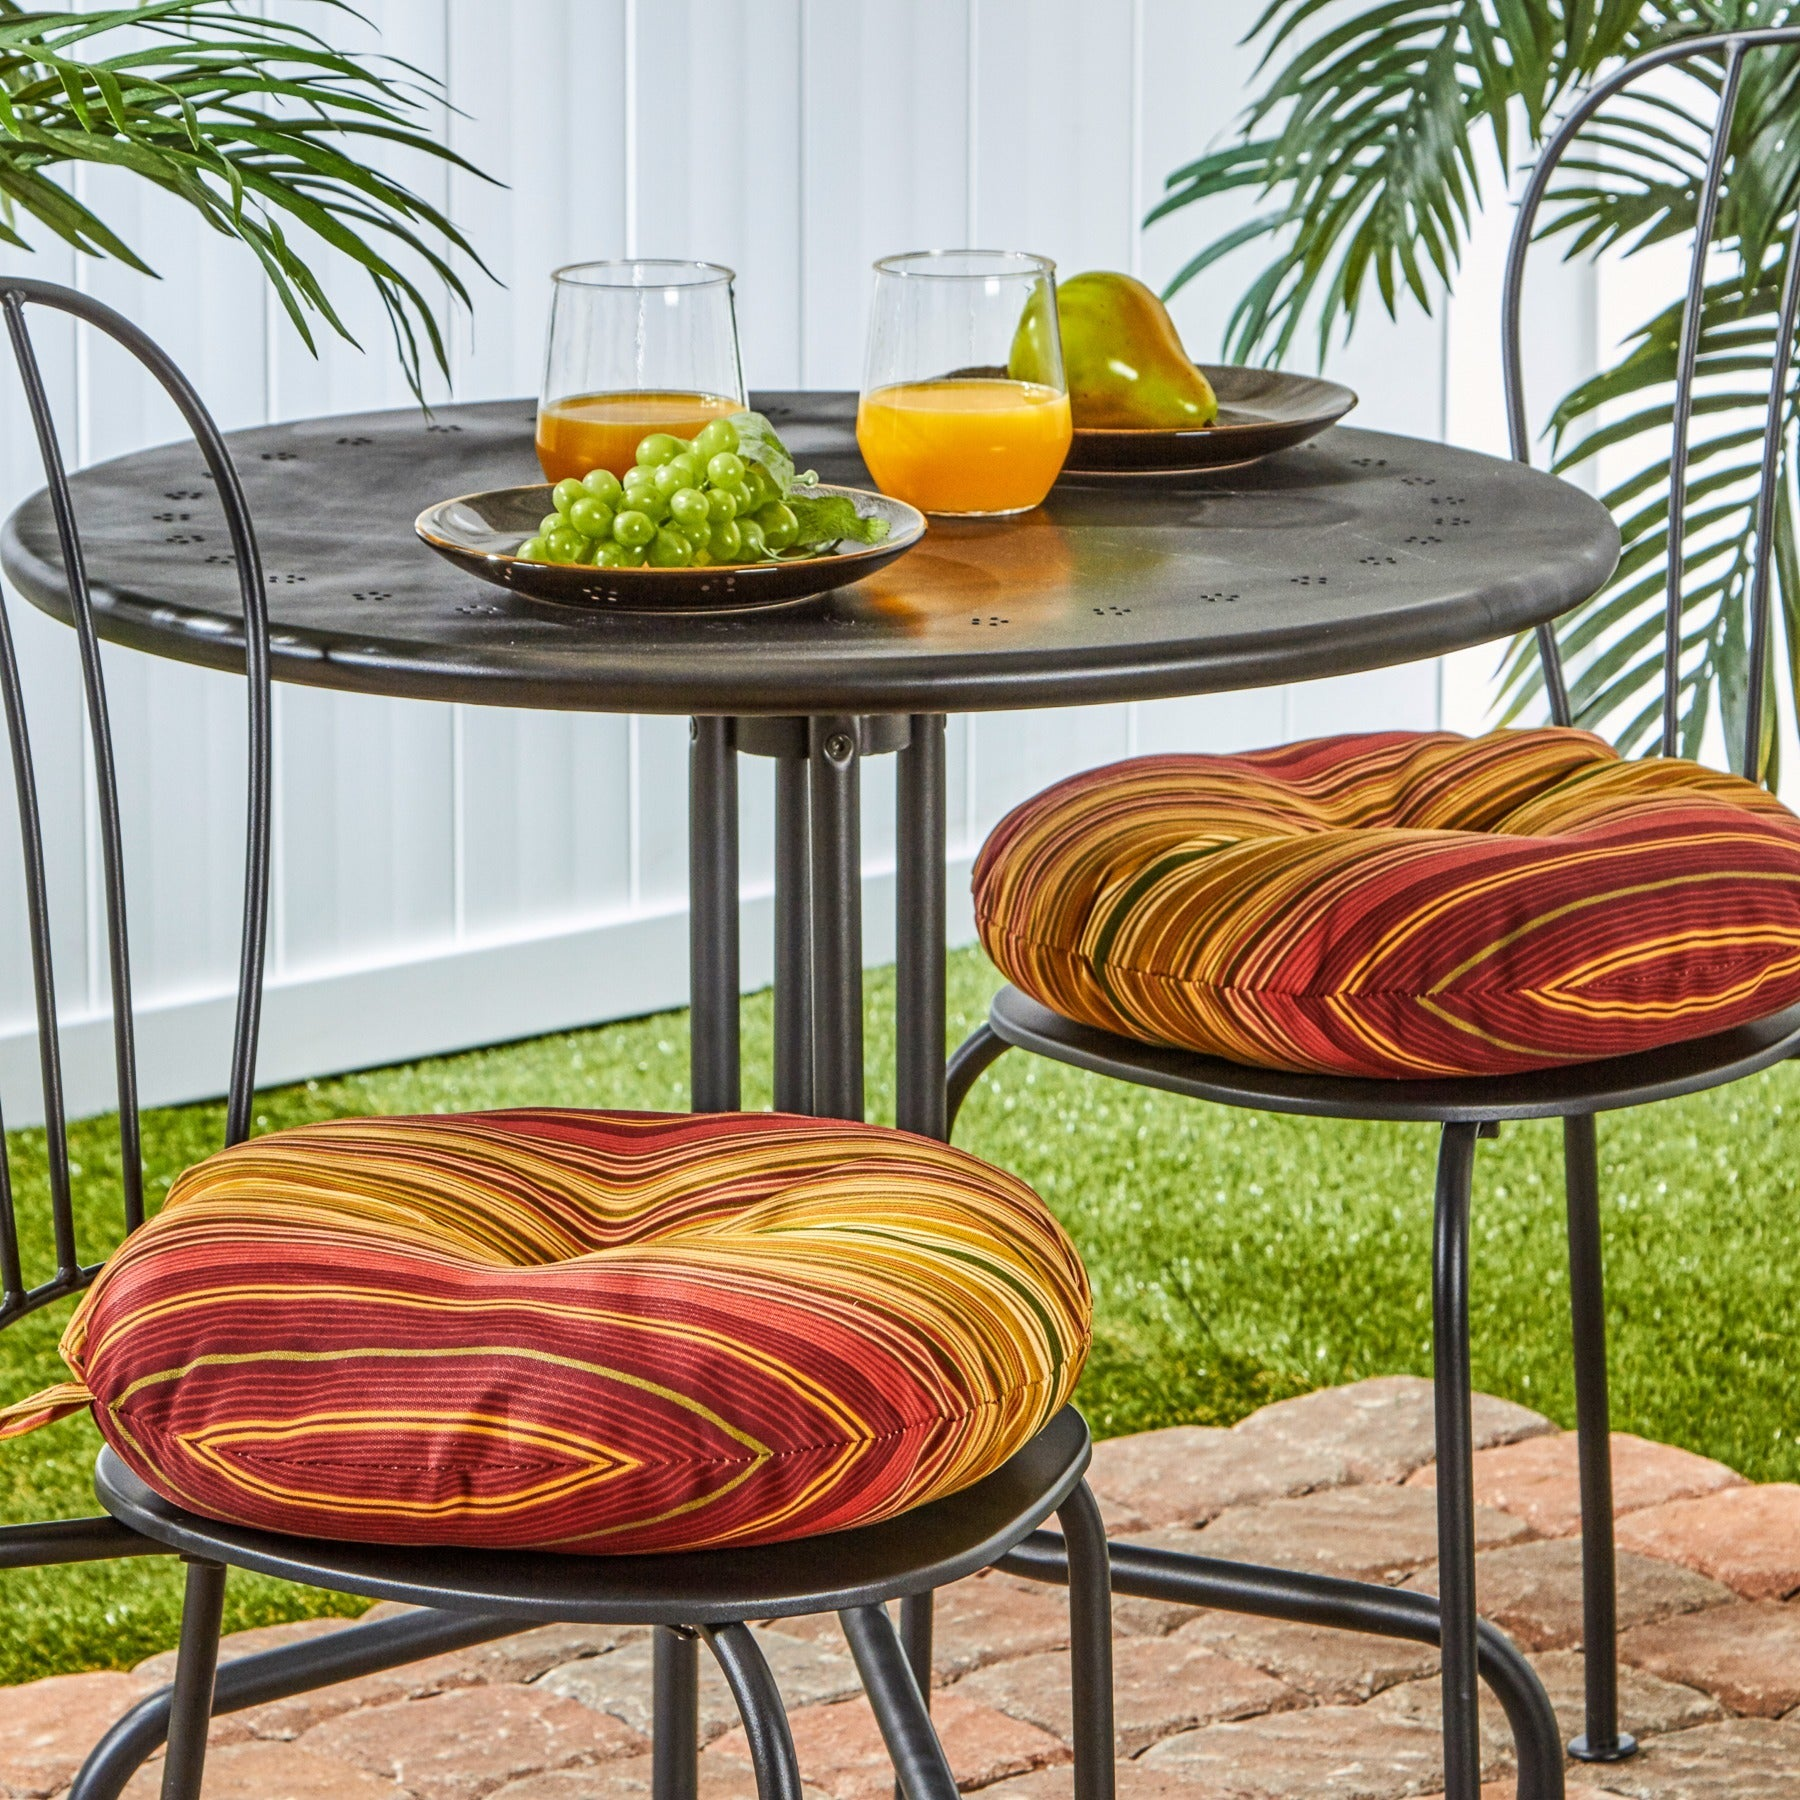 15 inch Round Outdoor Kinnabari Stripe Bistro Chair Cushions Set